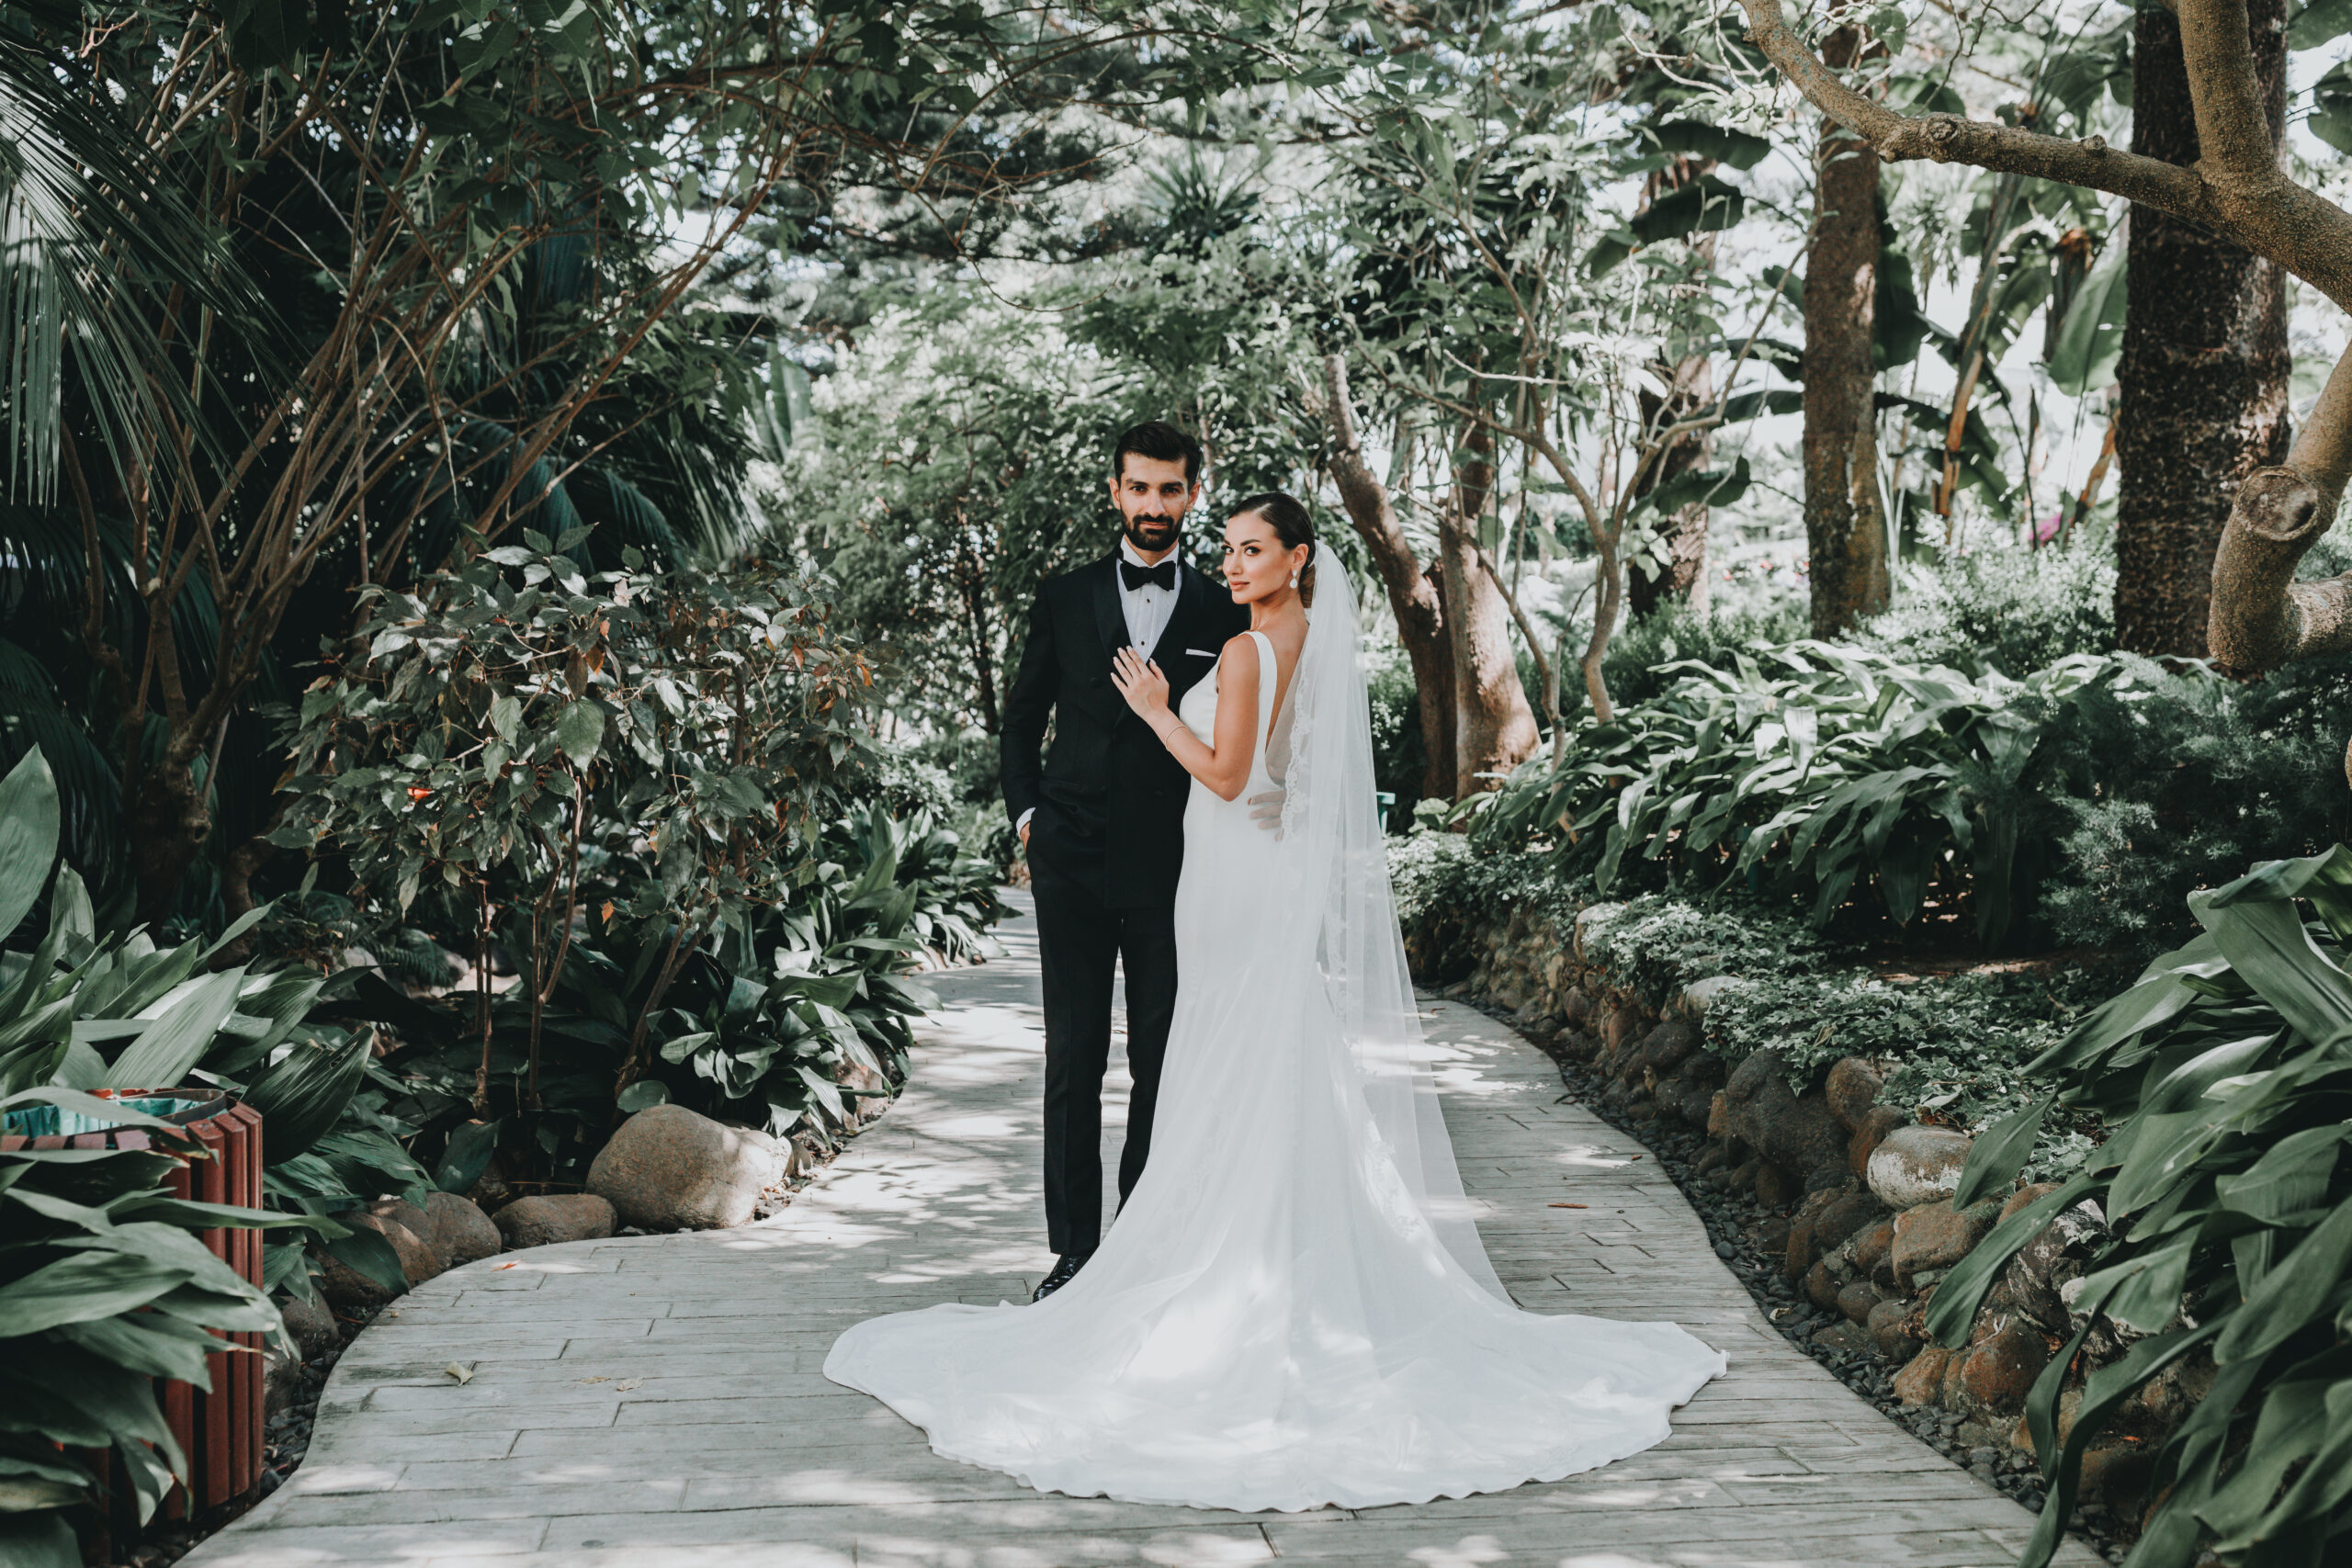 The bride and groom in the grounds of the beach club - Gino K photography